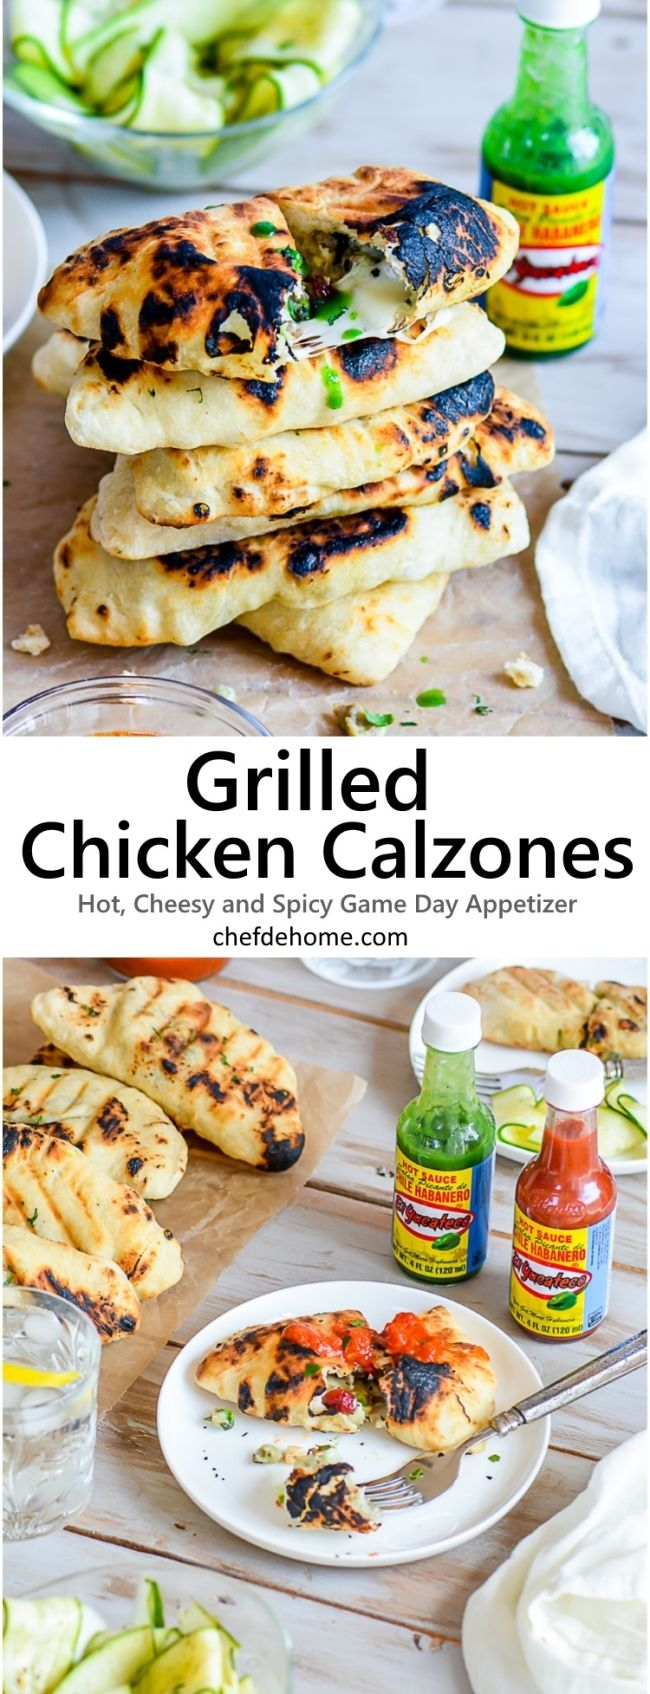 Sharing with you, mini grilled Chicken calzones filled with aromatic, flavorful and spicy chicken, spinach, and oozing cheese! With delicious flavor@ElYucateco Green Habanero Sauce, these stuufed pocket are perfect to please hungry cheering crowds!